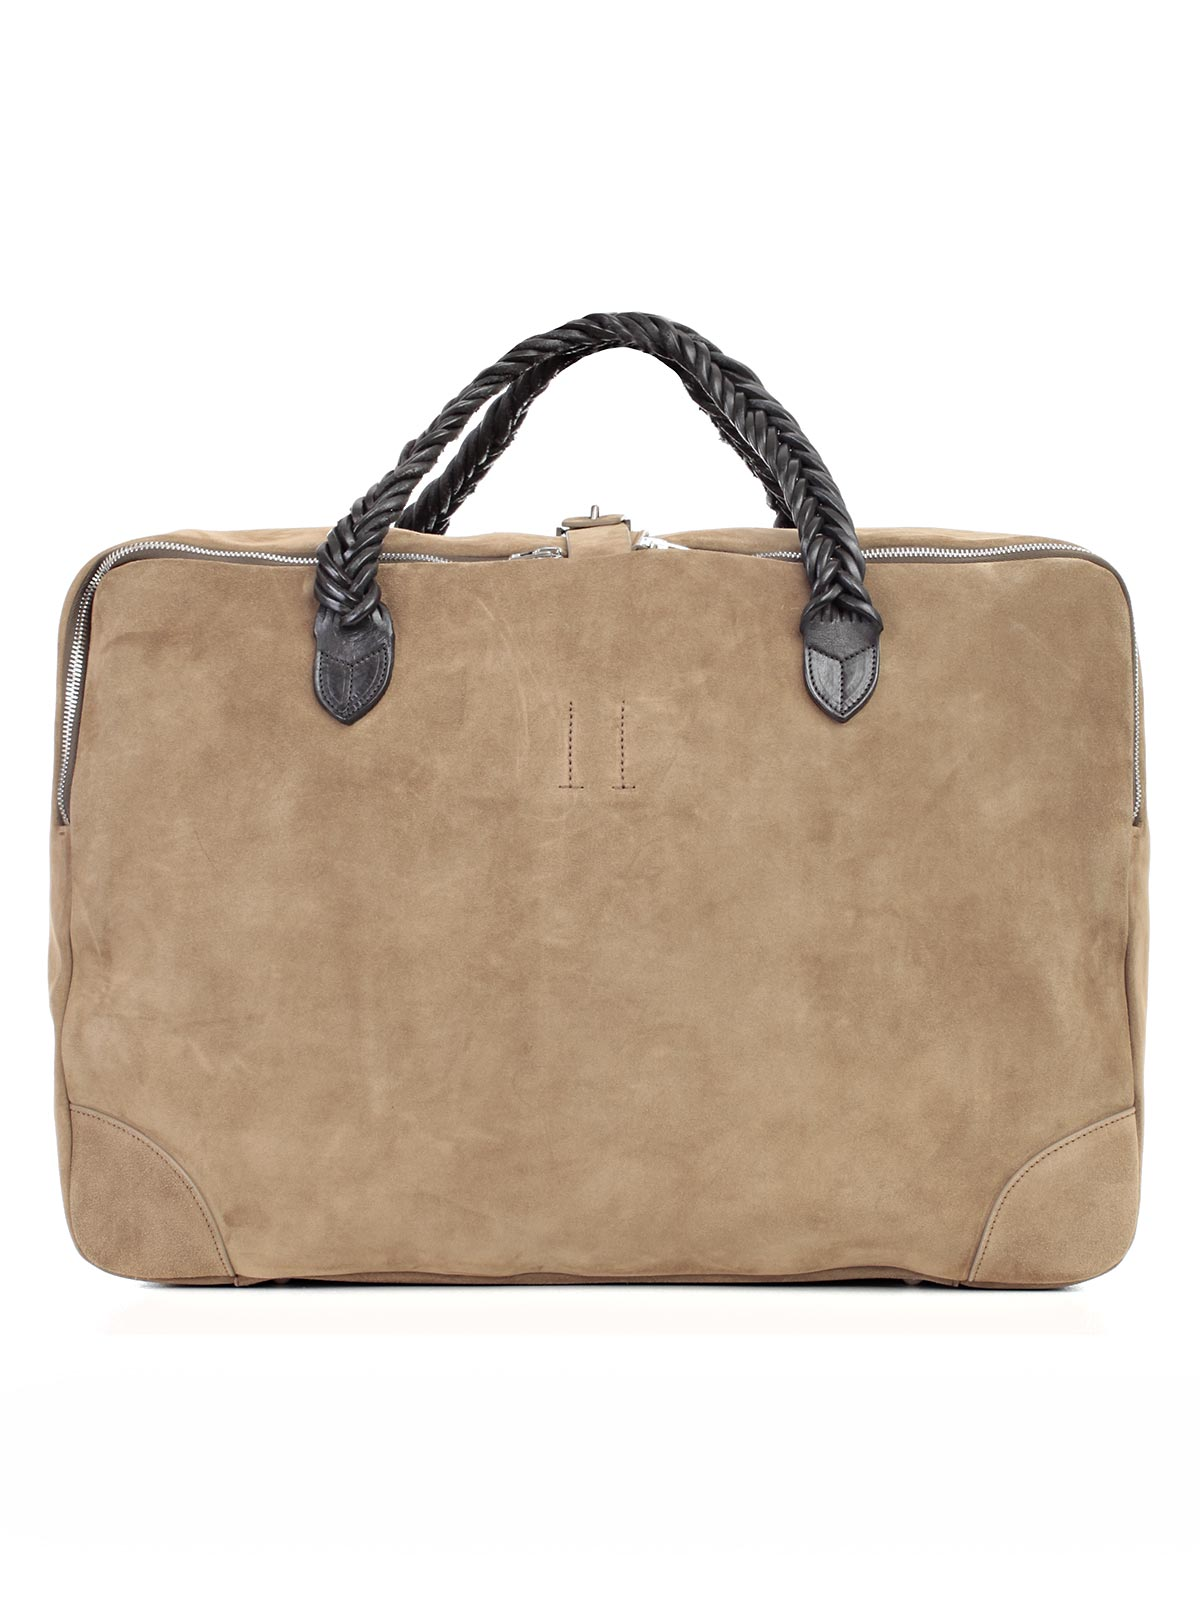 Picture of GOLDEN GOOSE DELUXE BRAND BAG BORSA EQUIPAGE GRANDE